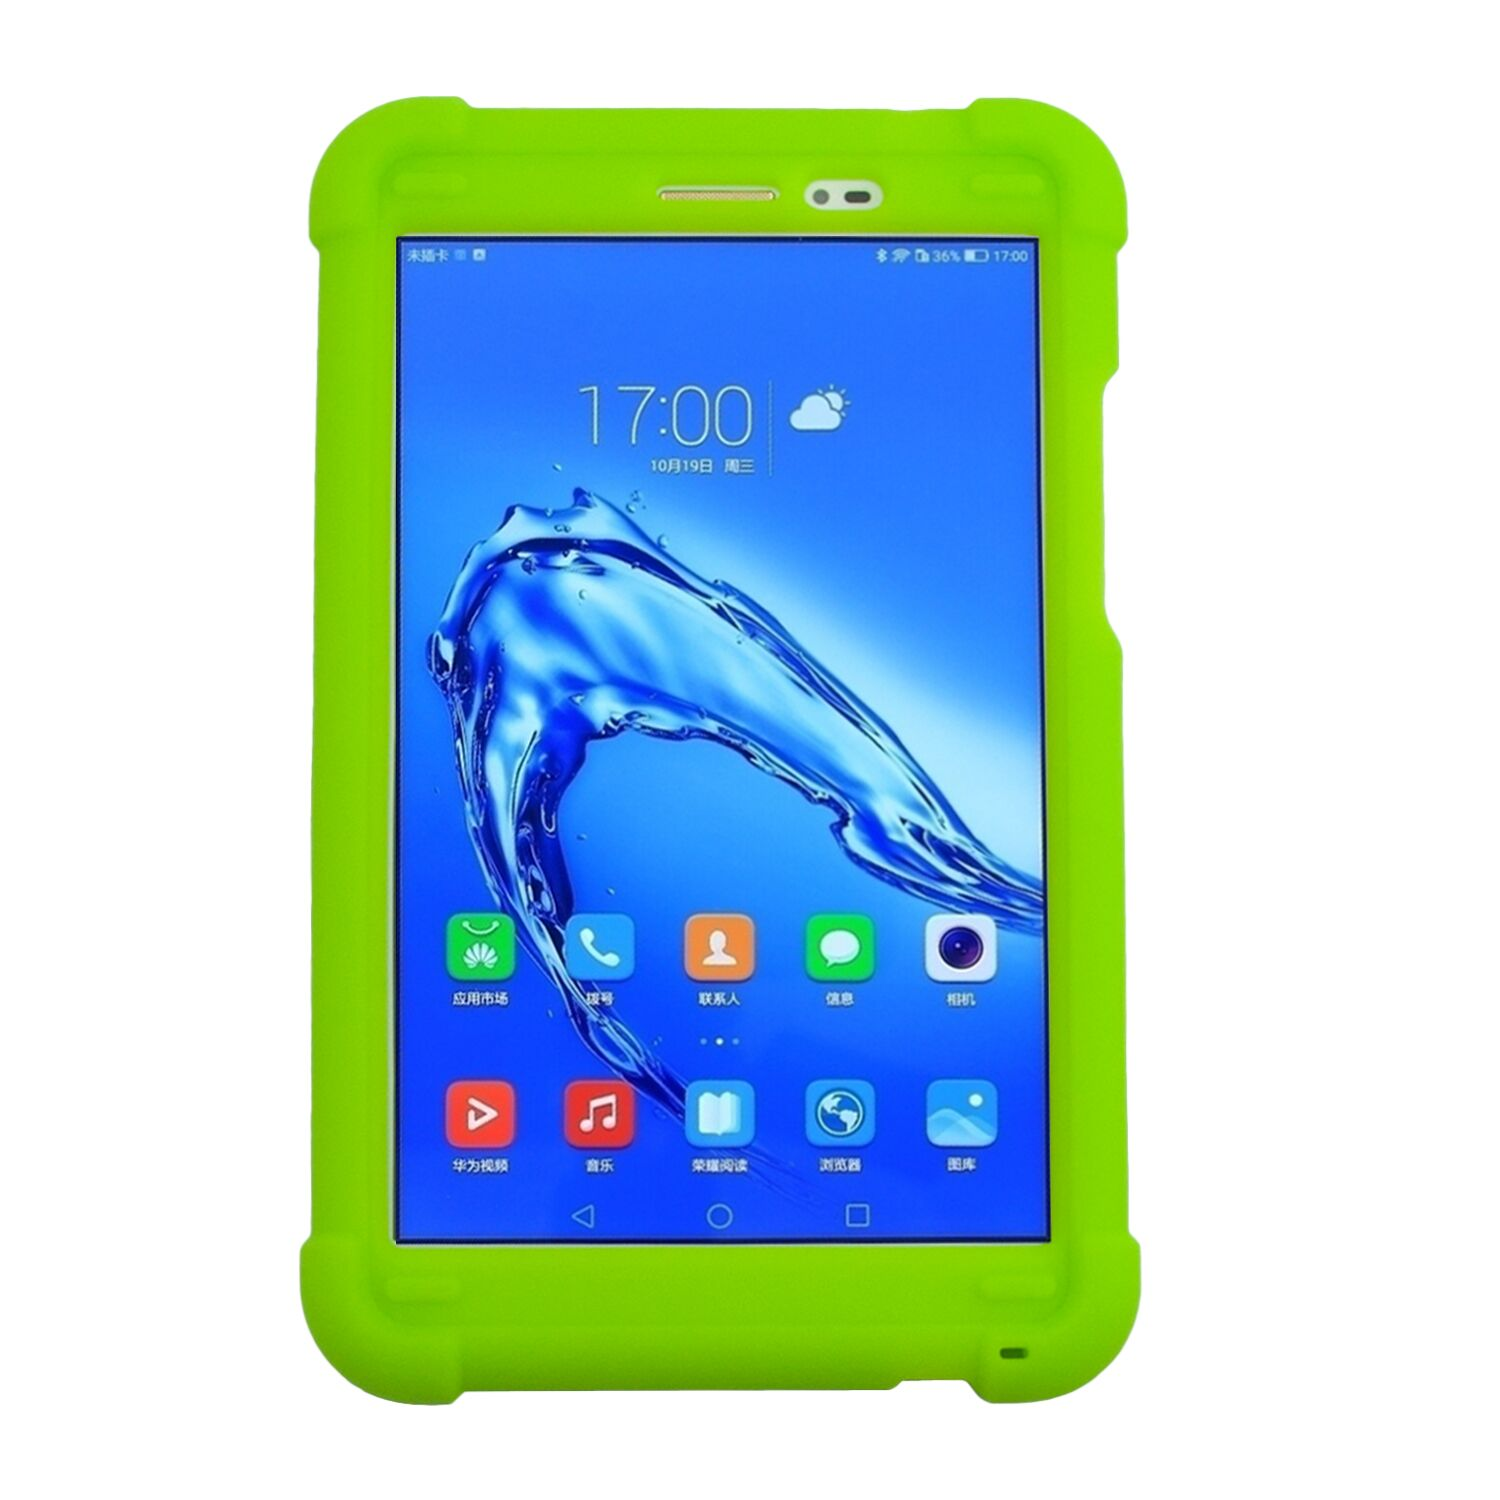 MingShore Silicone Case For Huawei T2 Tablet 2 AL00 AL01 8.0 Rugged Cover For Huawei MediaPad T2 Pro 8.0 JDN-W09 Tablet Case